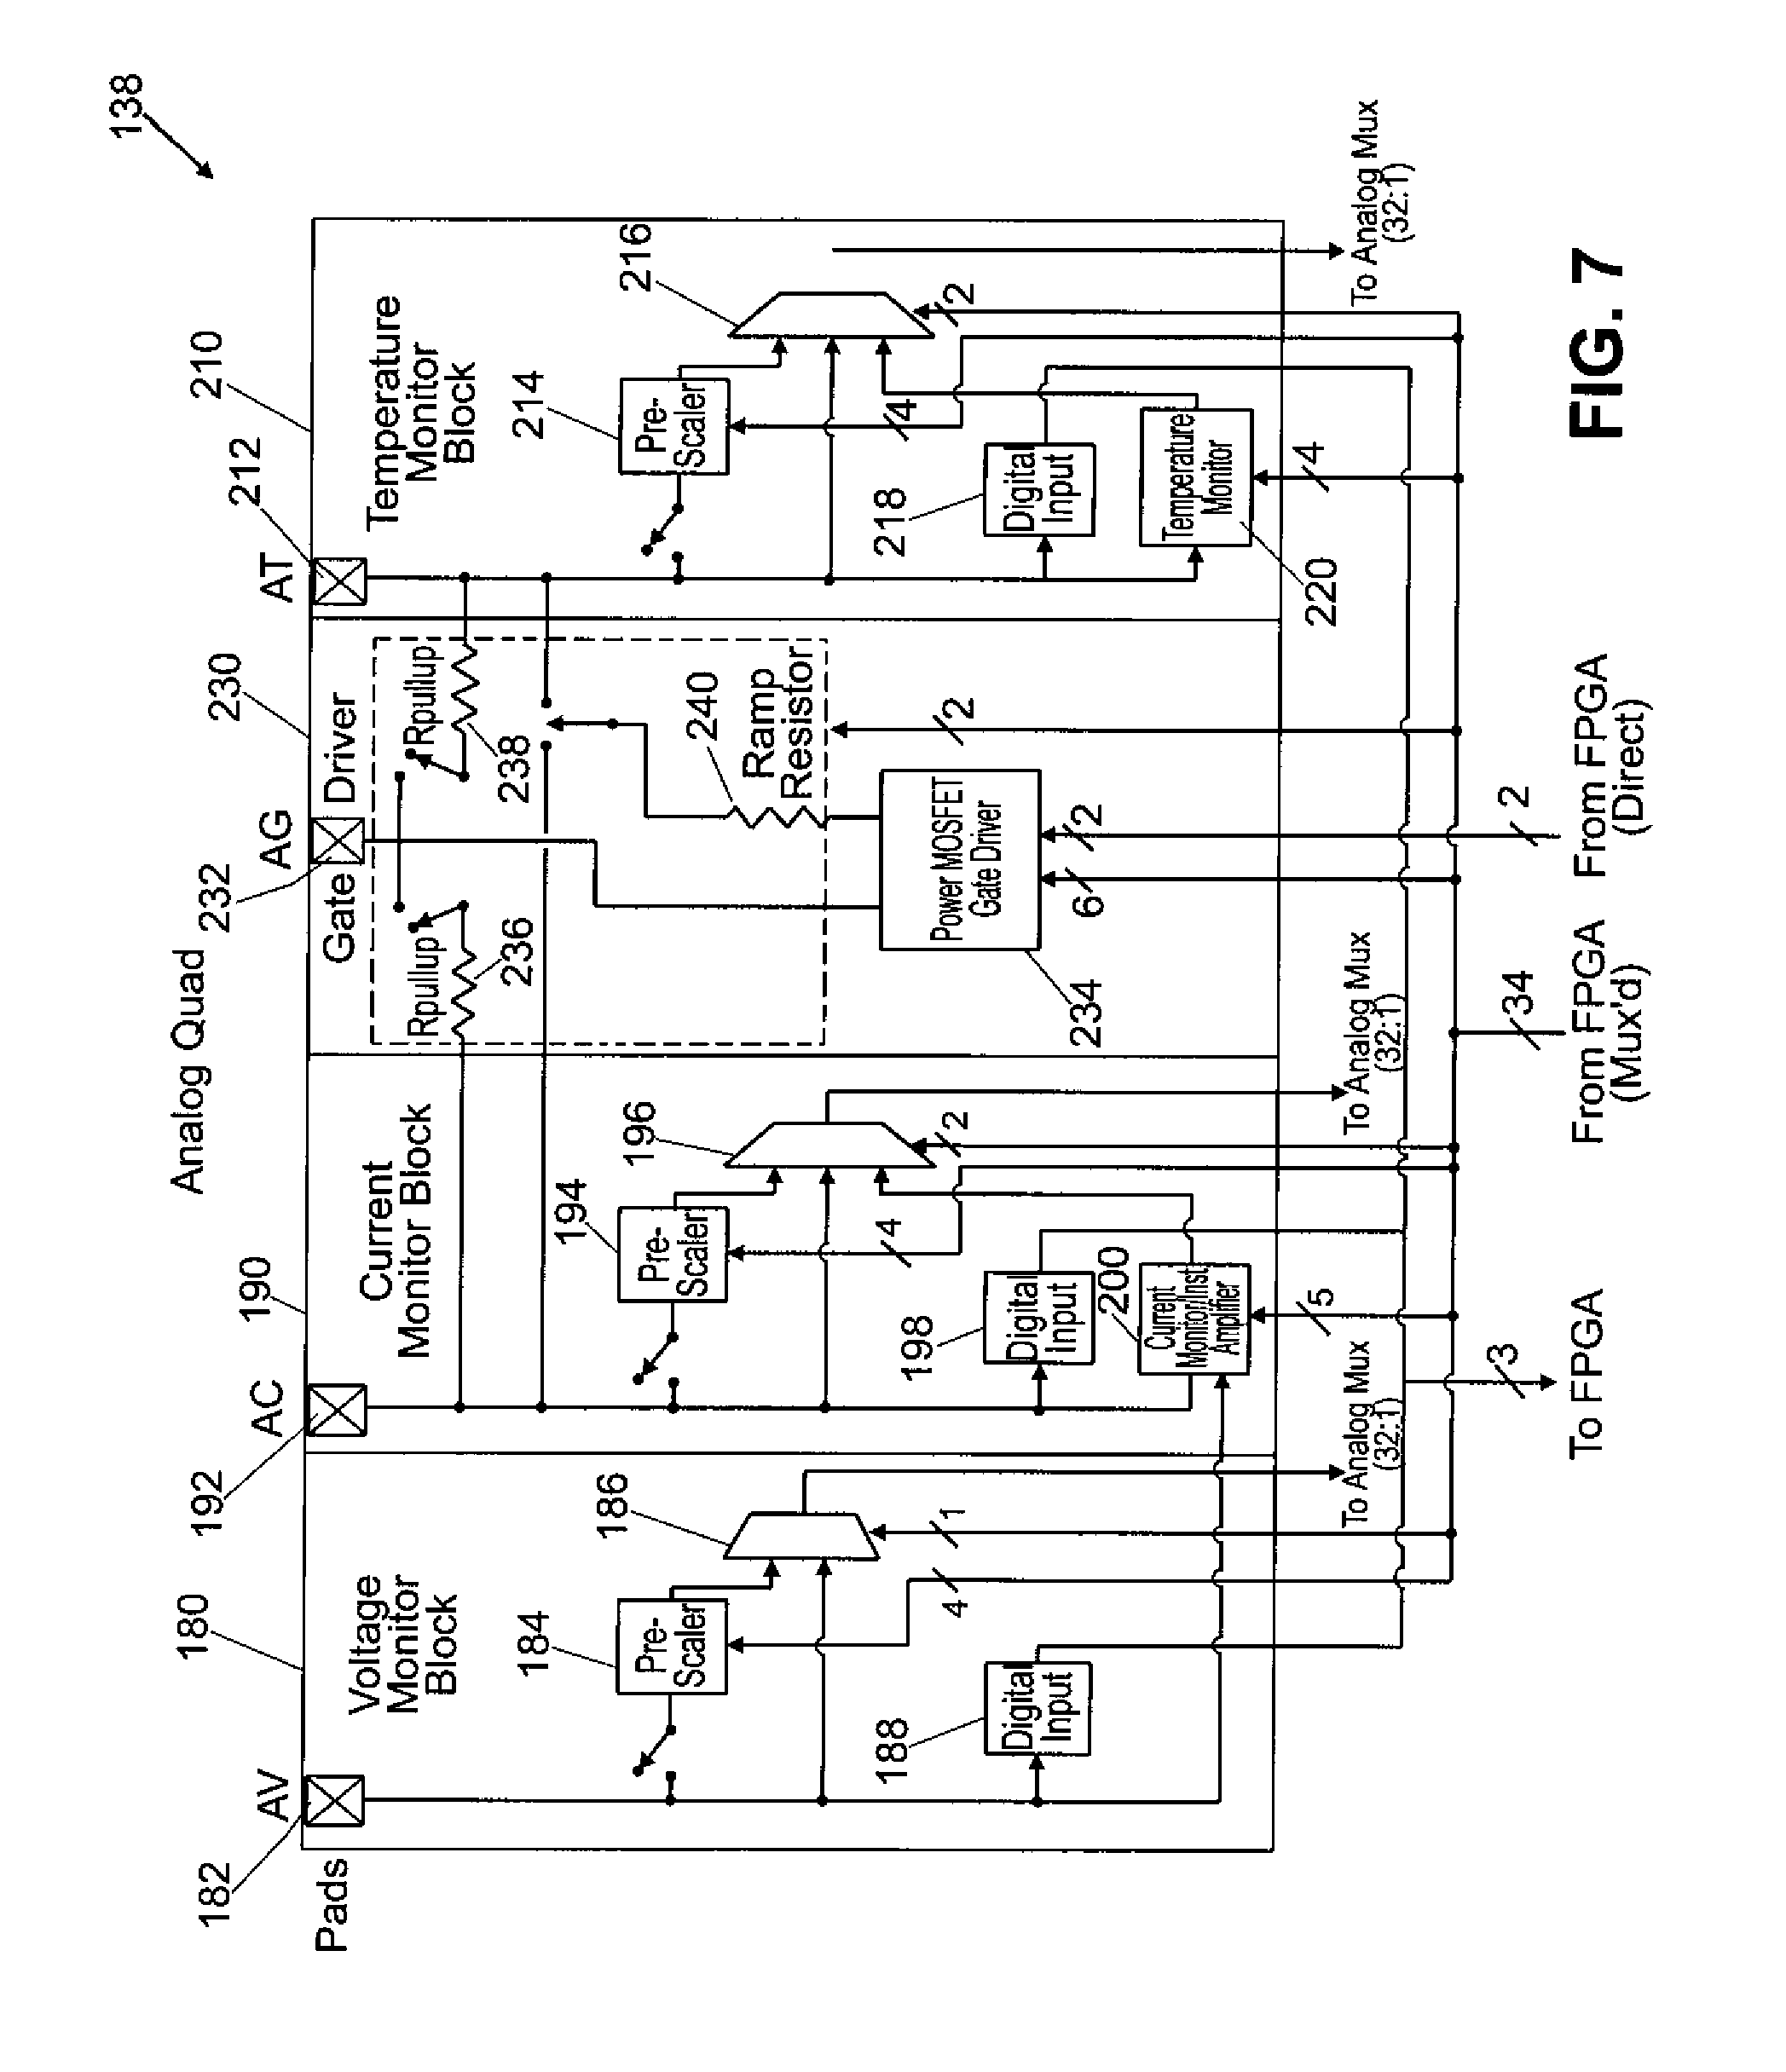 on a chip for temperature monitoring and control   Patents #363636